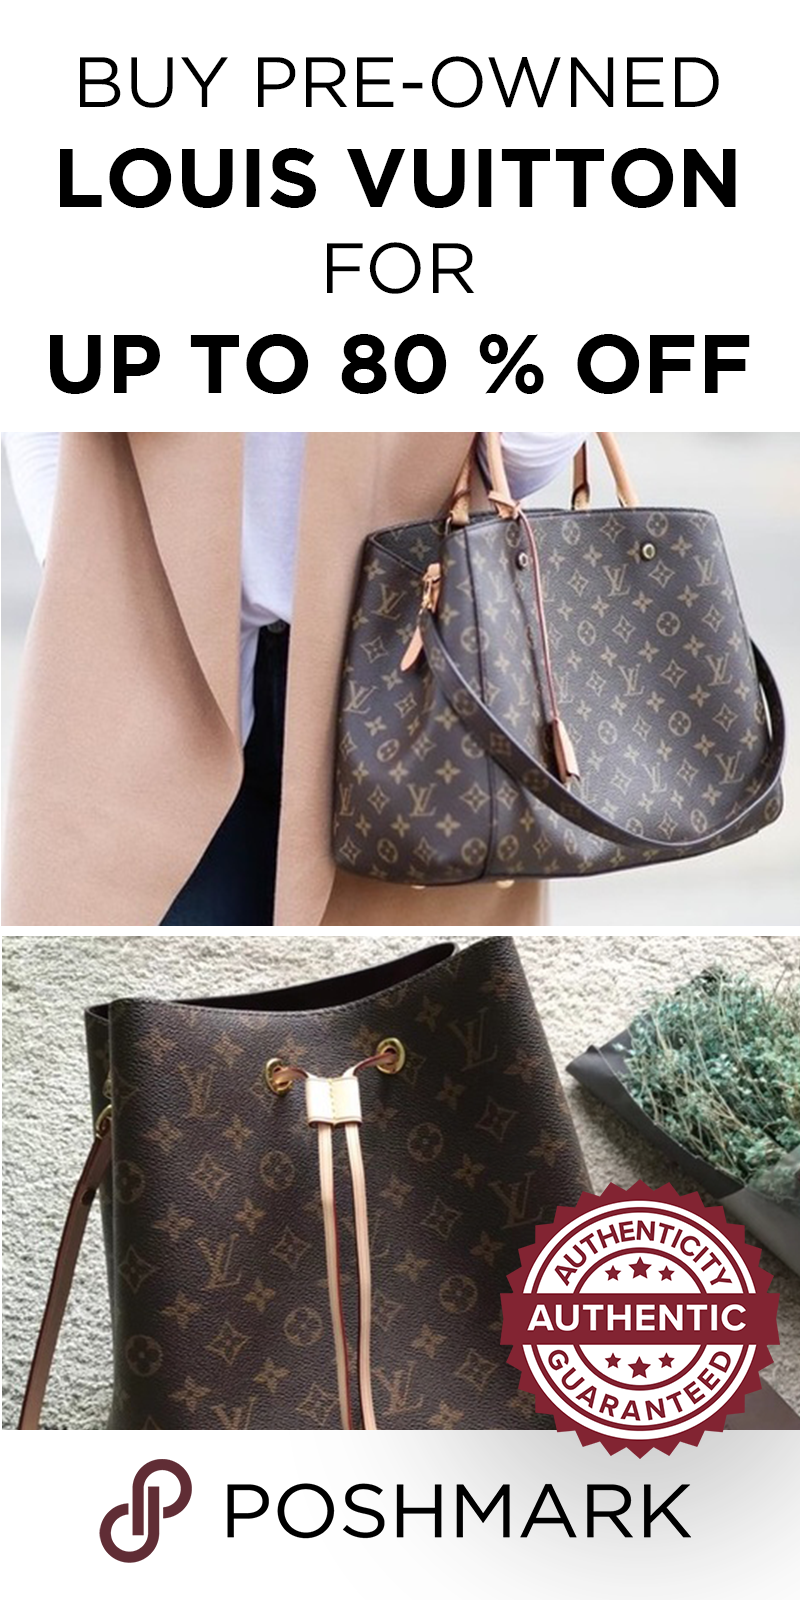 Pre Owned Louis Vuitton Handbags And Other Designer Luxury Brands For Up To 80 Off On Poshmark Pursesbrands